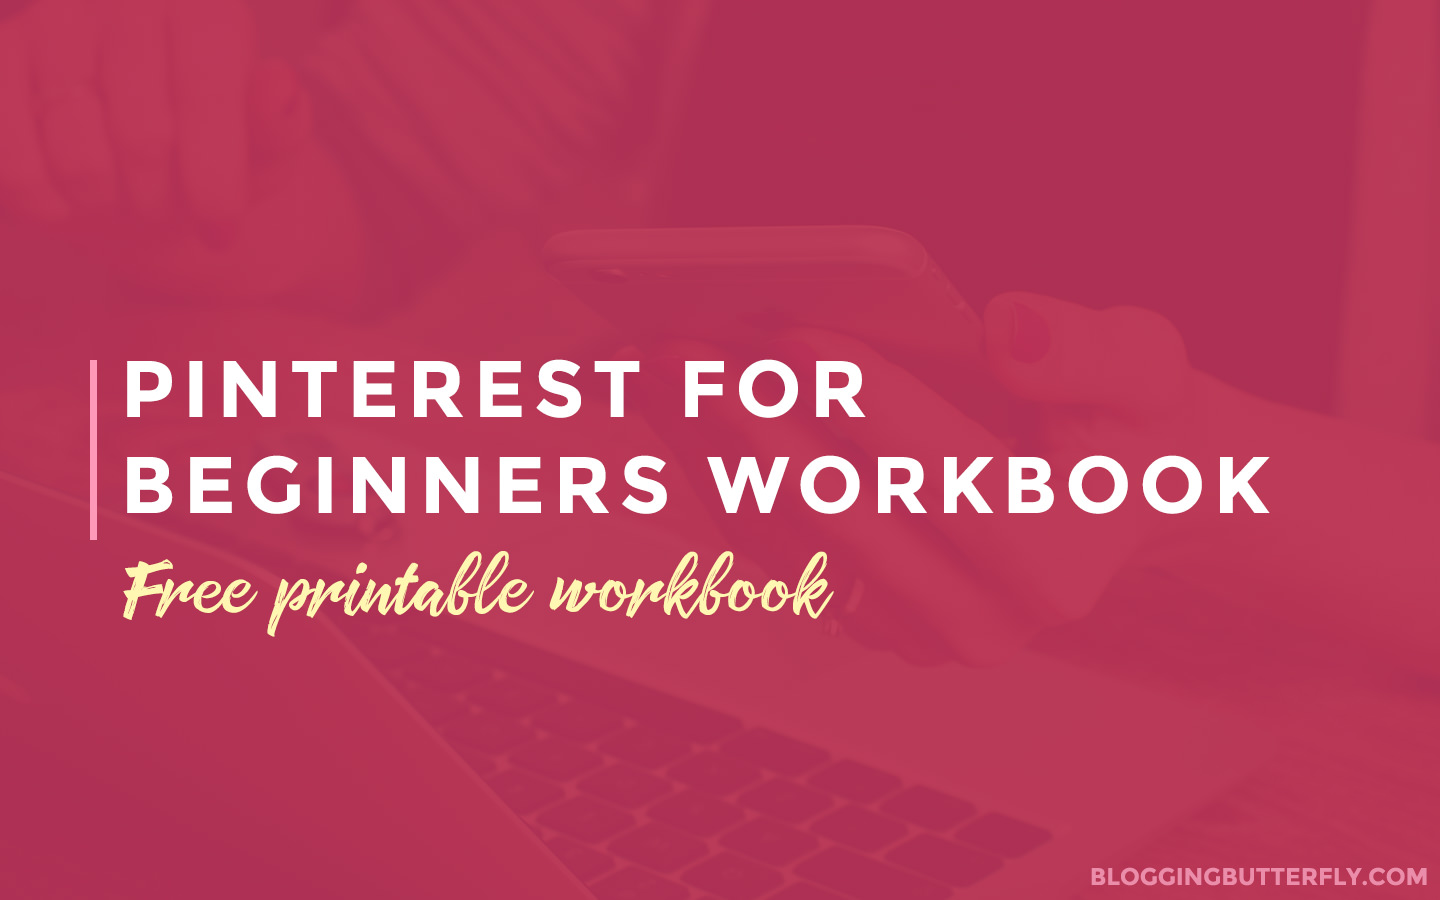 Free Pinterest for Bloggers Workbook